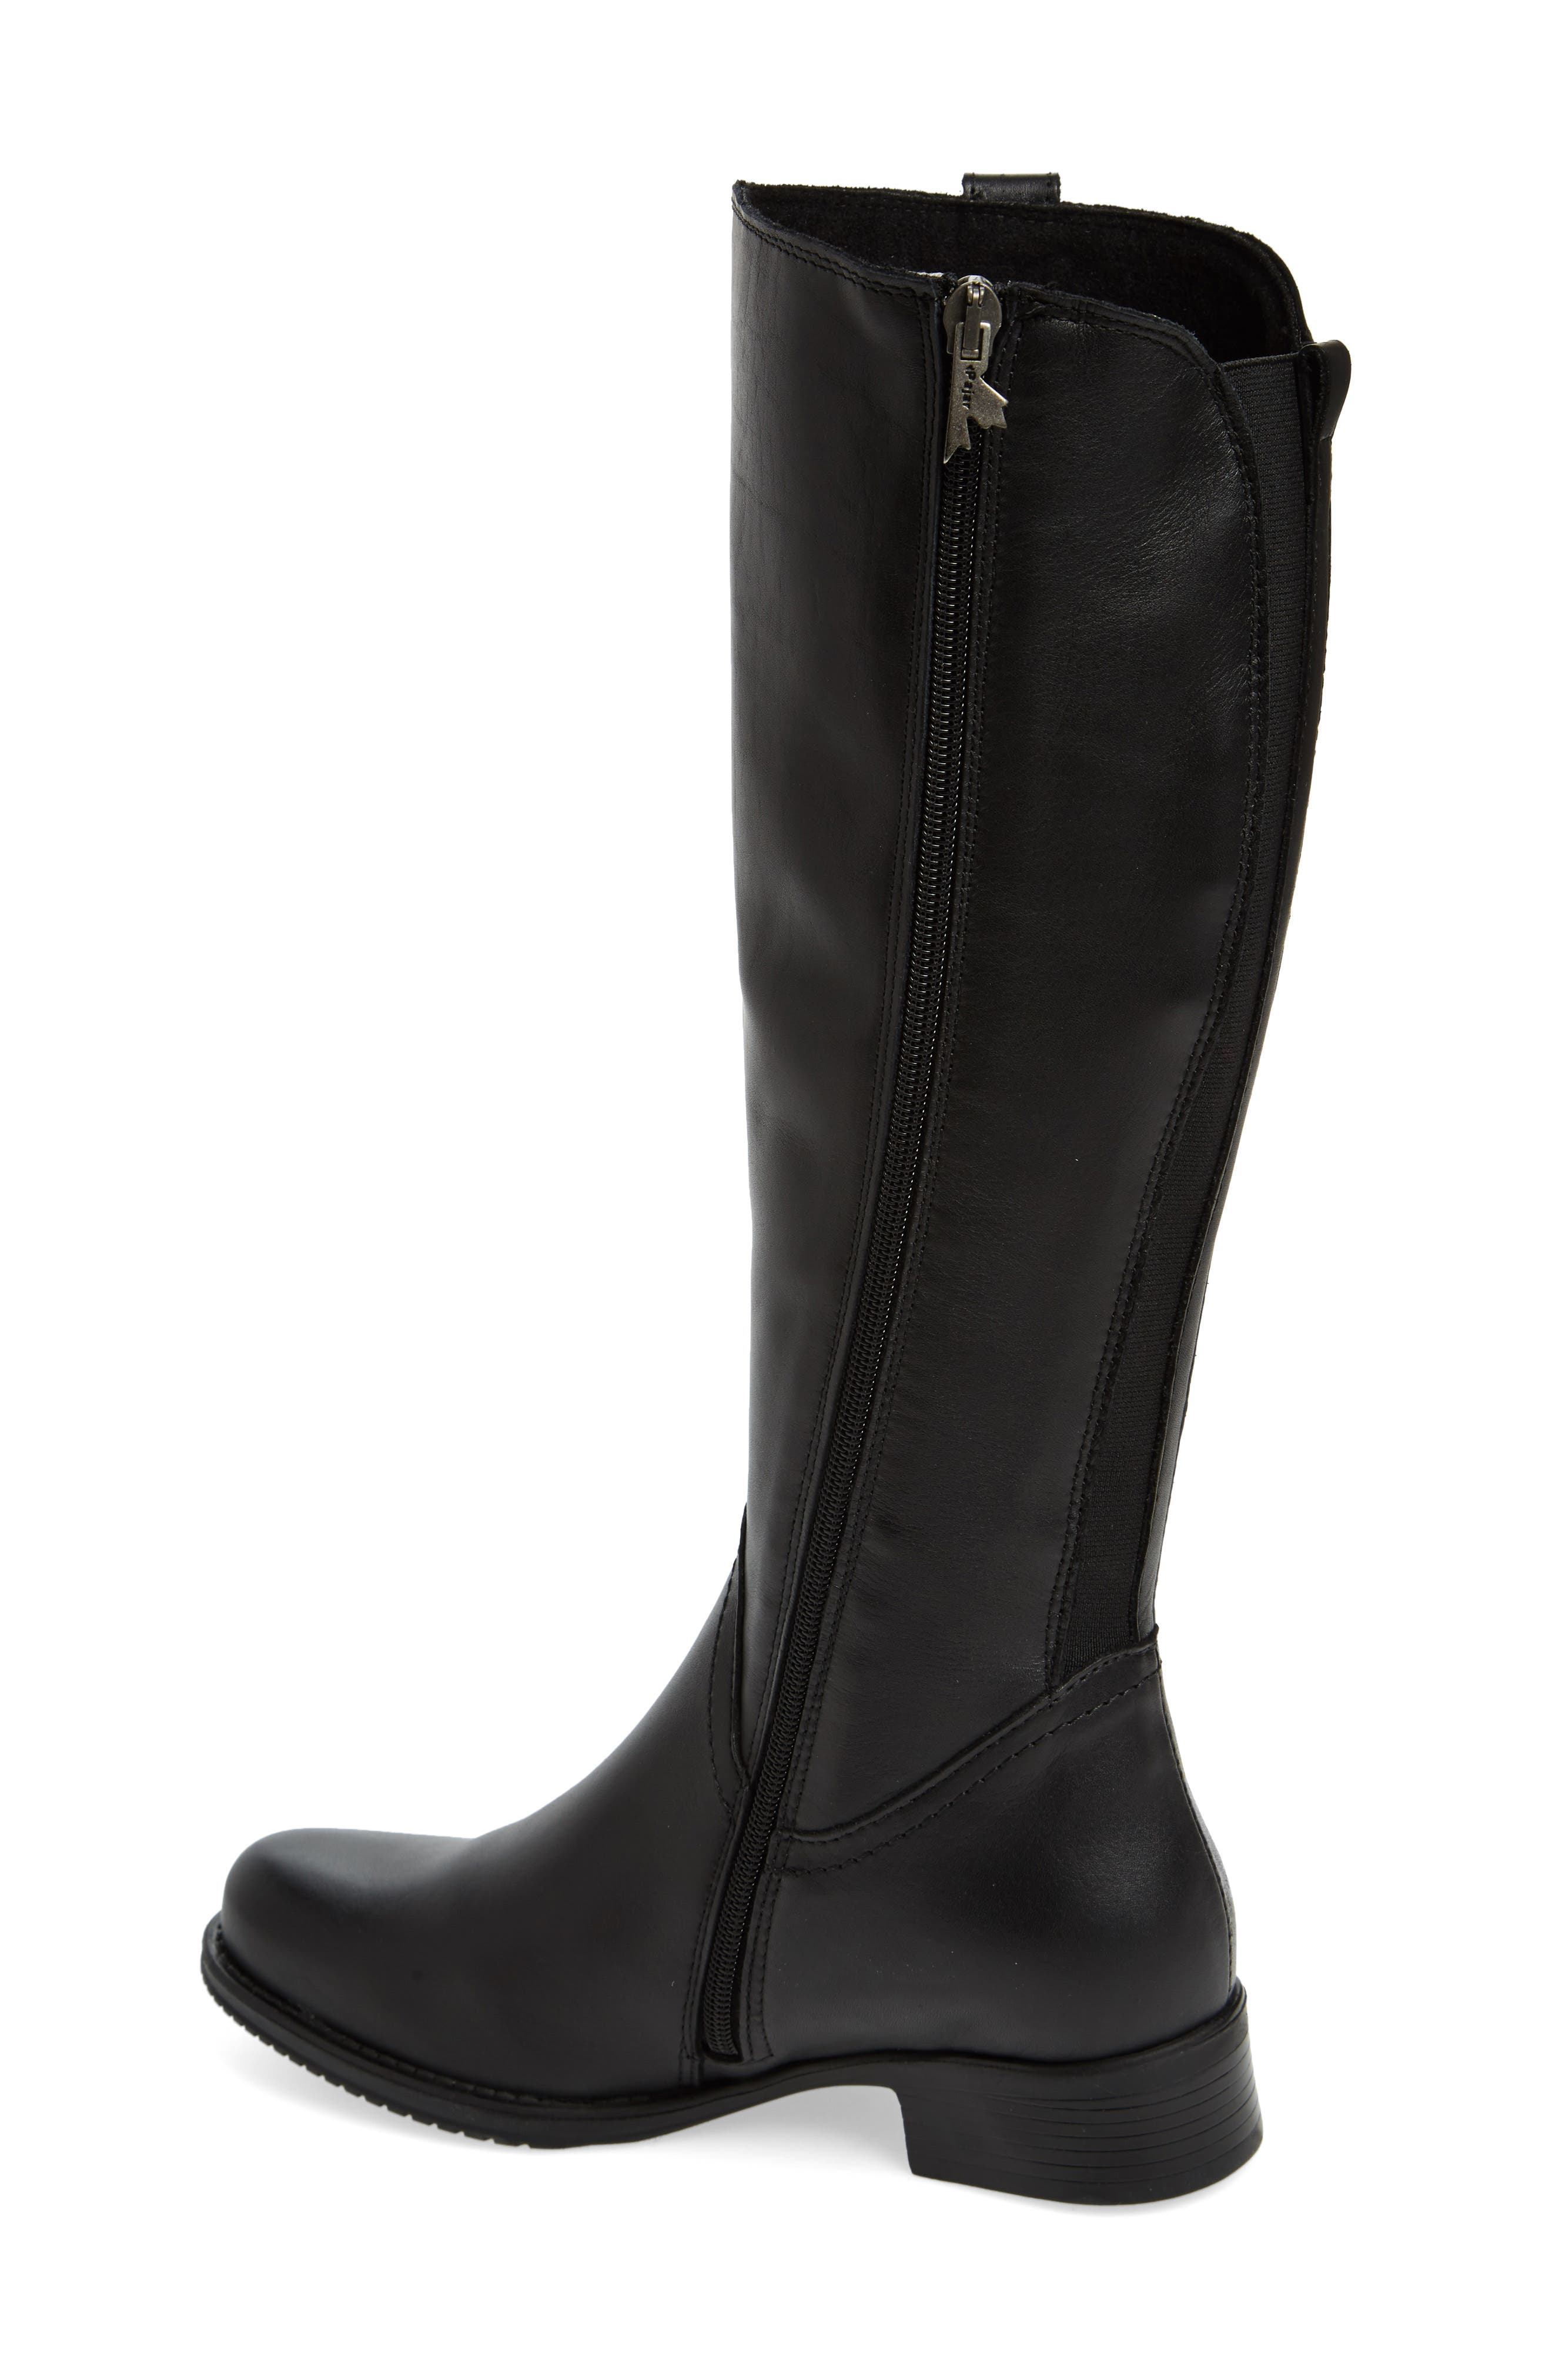 Dogueno Waterproof Boot,                             Alternate thumbnail 2, color,